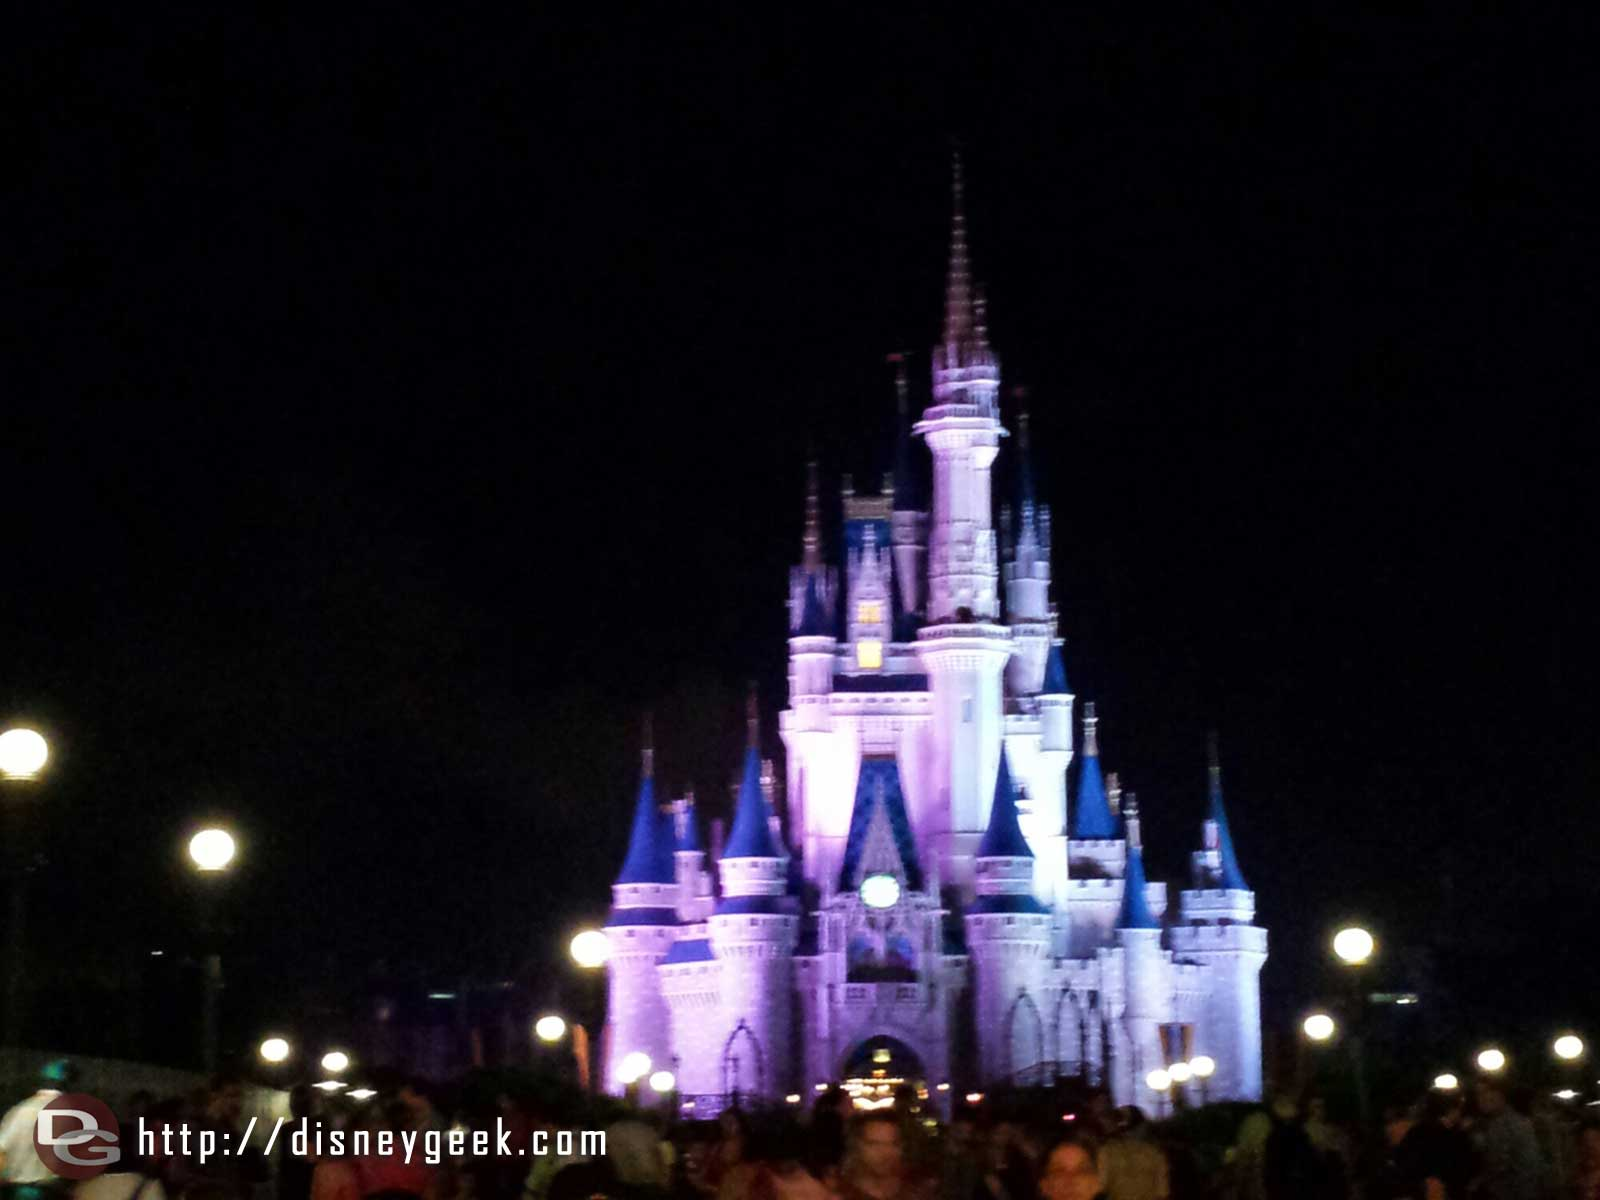 Cinderella Castle on the way out